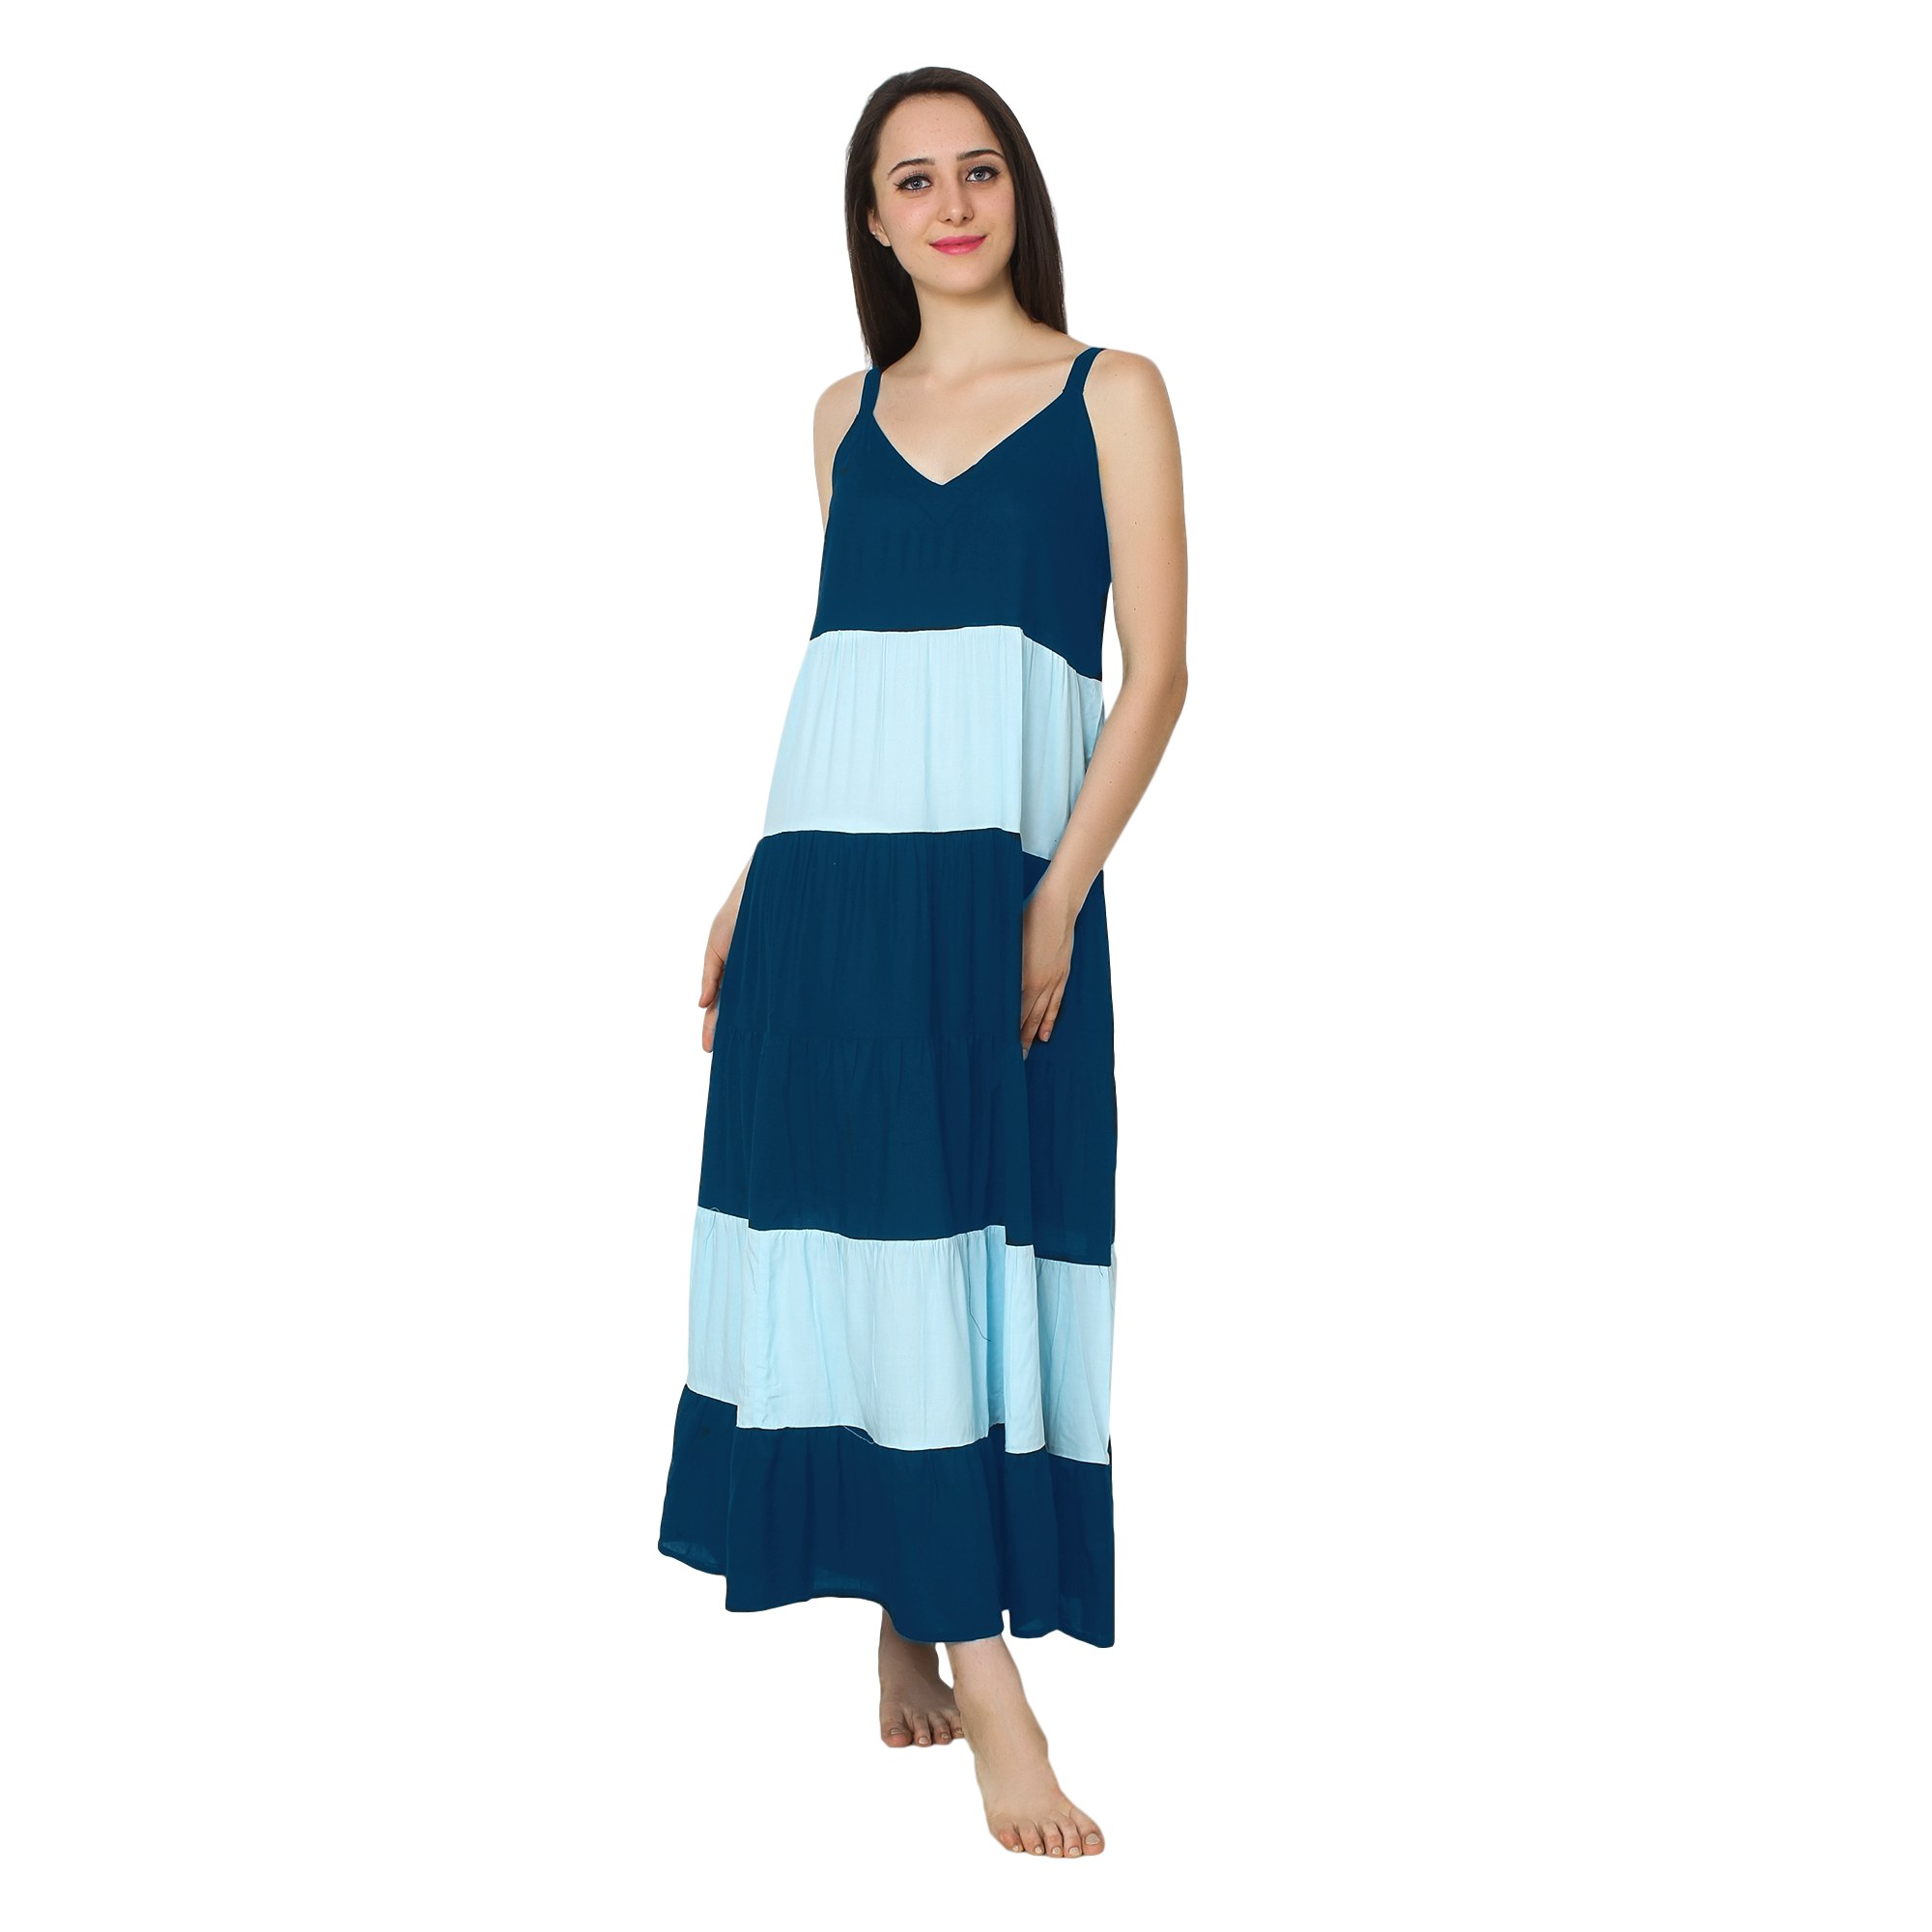 Spaghetti Strap Pleated Frilled Nighty Dress Gown in Sky Blue:Light Blue